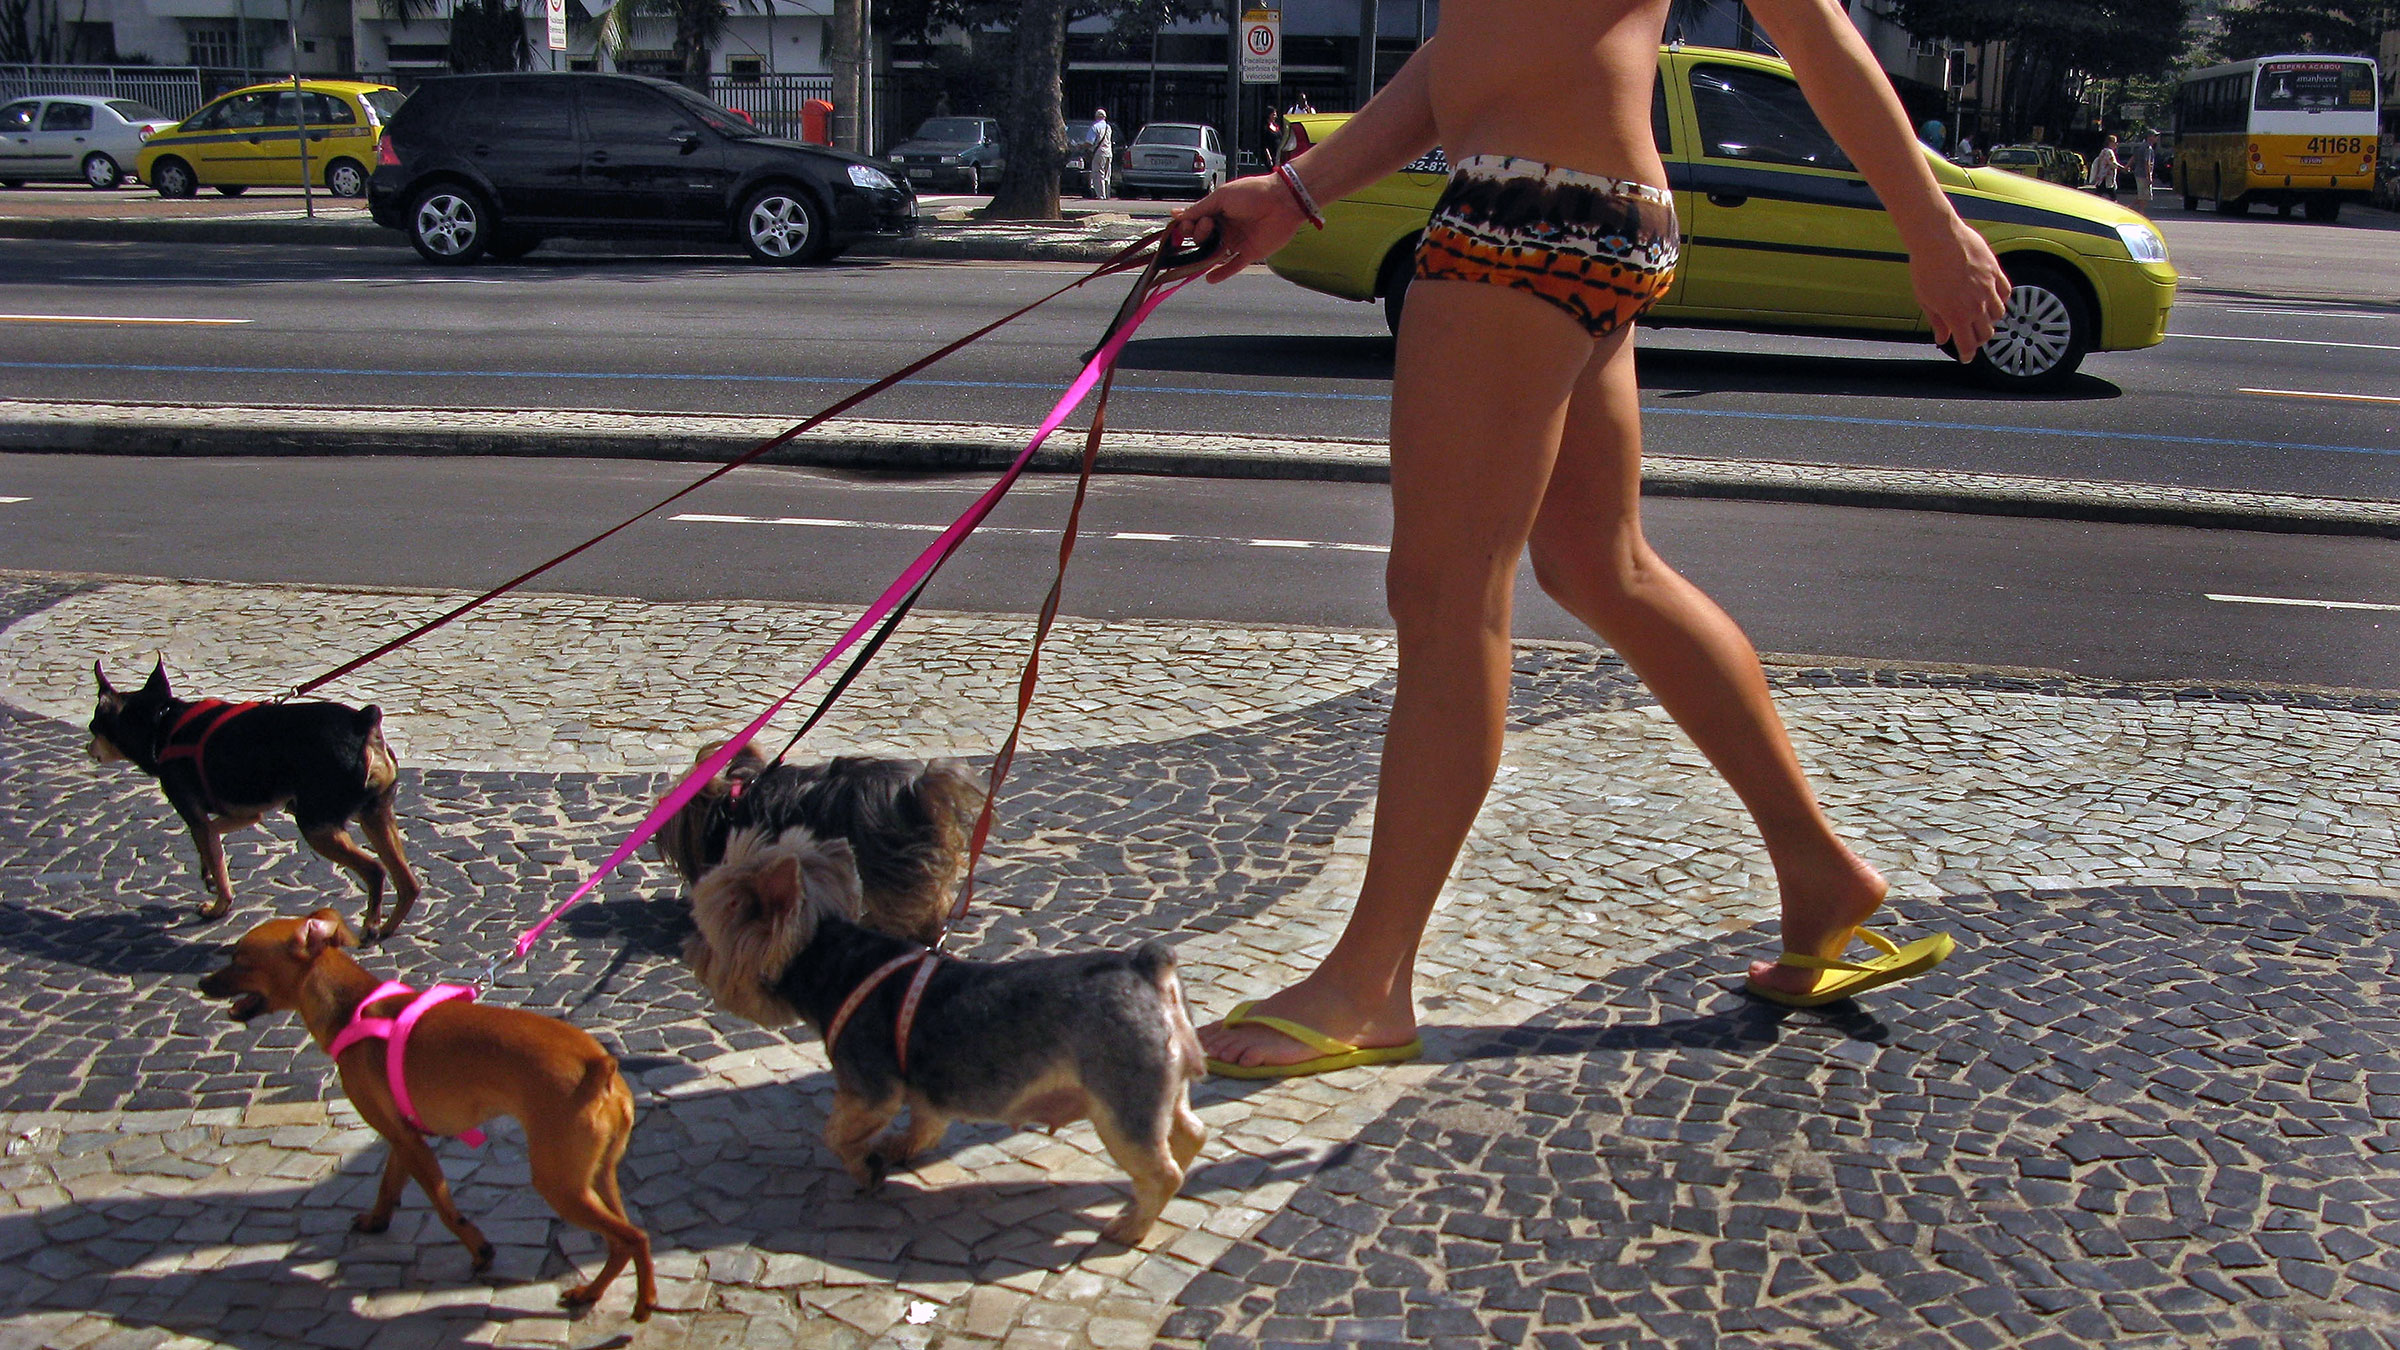 A man walking multiple dogs in Rio